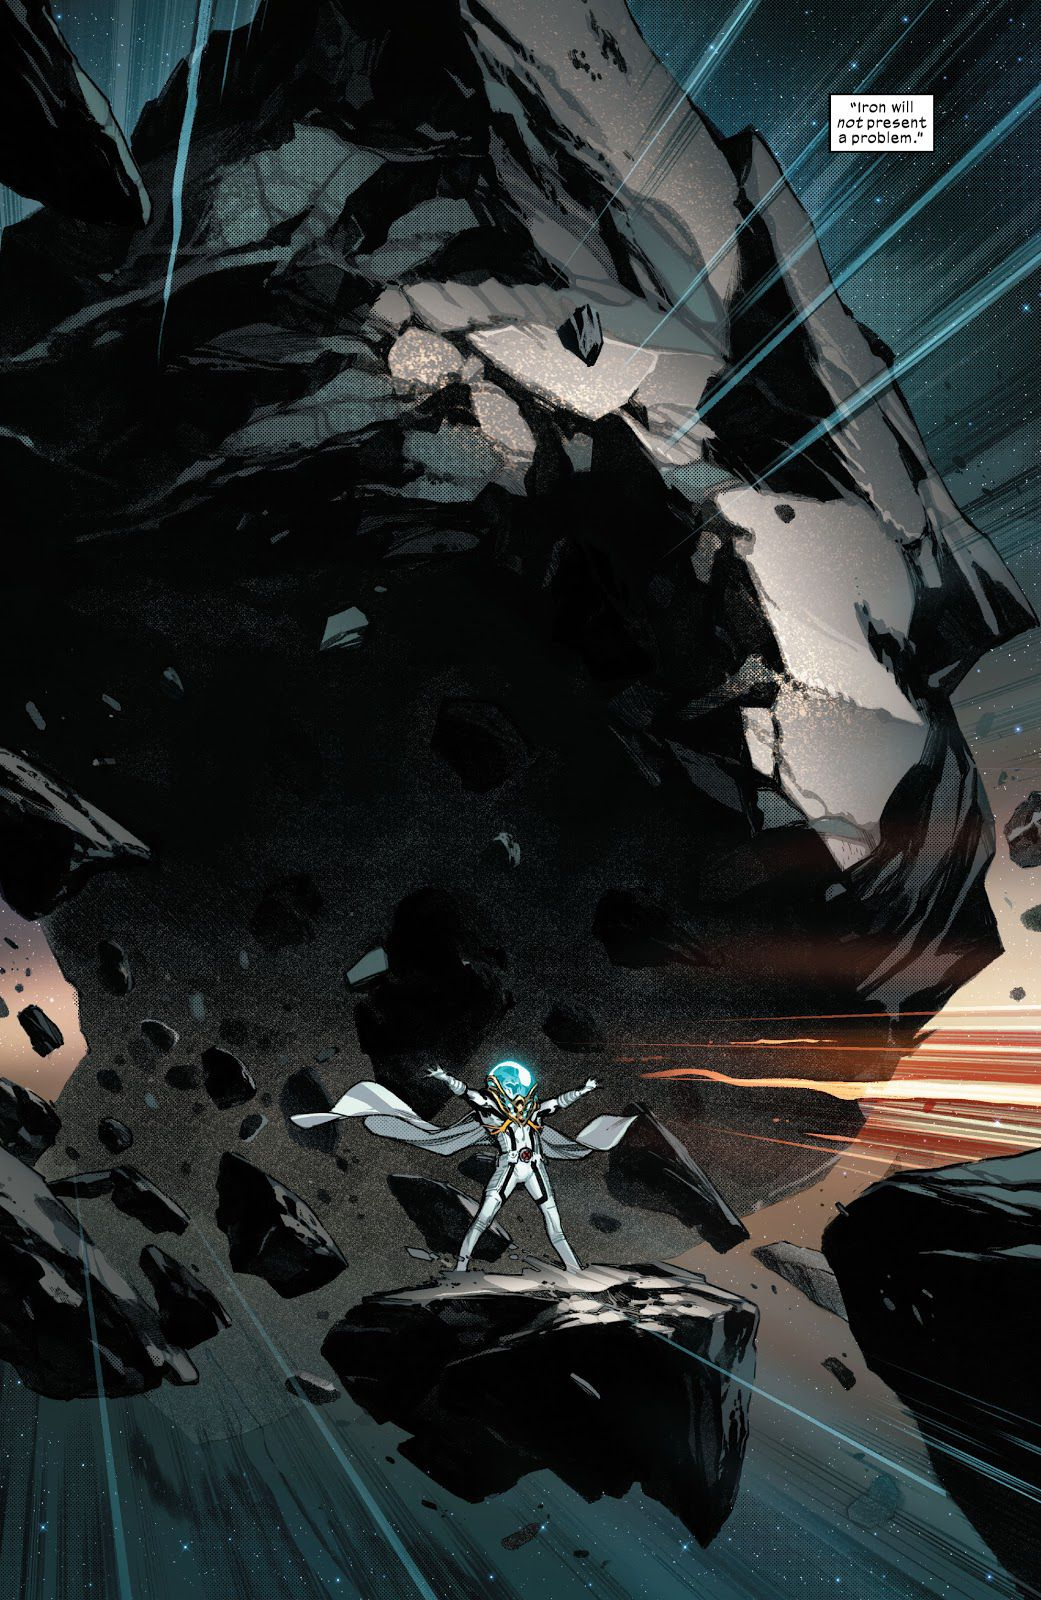 Magneto stands, feet wide, arms outstretched, on an asteroid as he tows a massive herd of iron-filled rocks through space in Planet-Size X-Men #1 (2021).